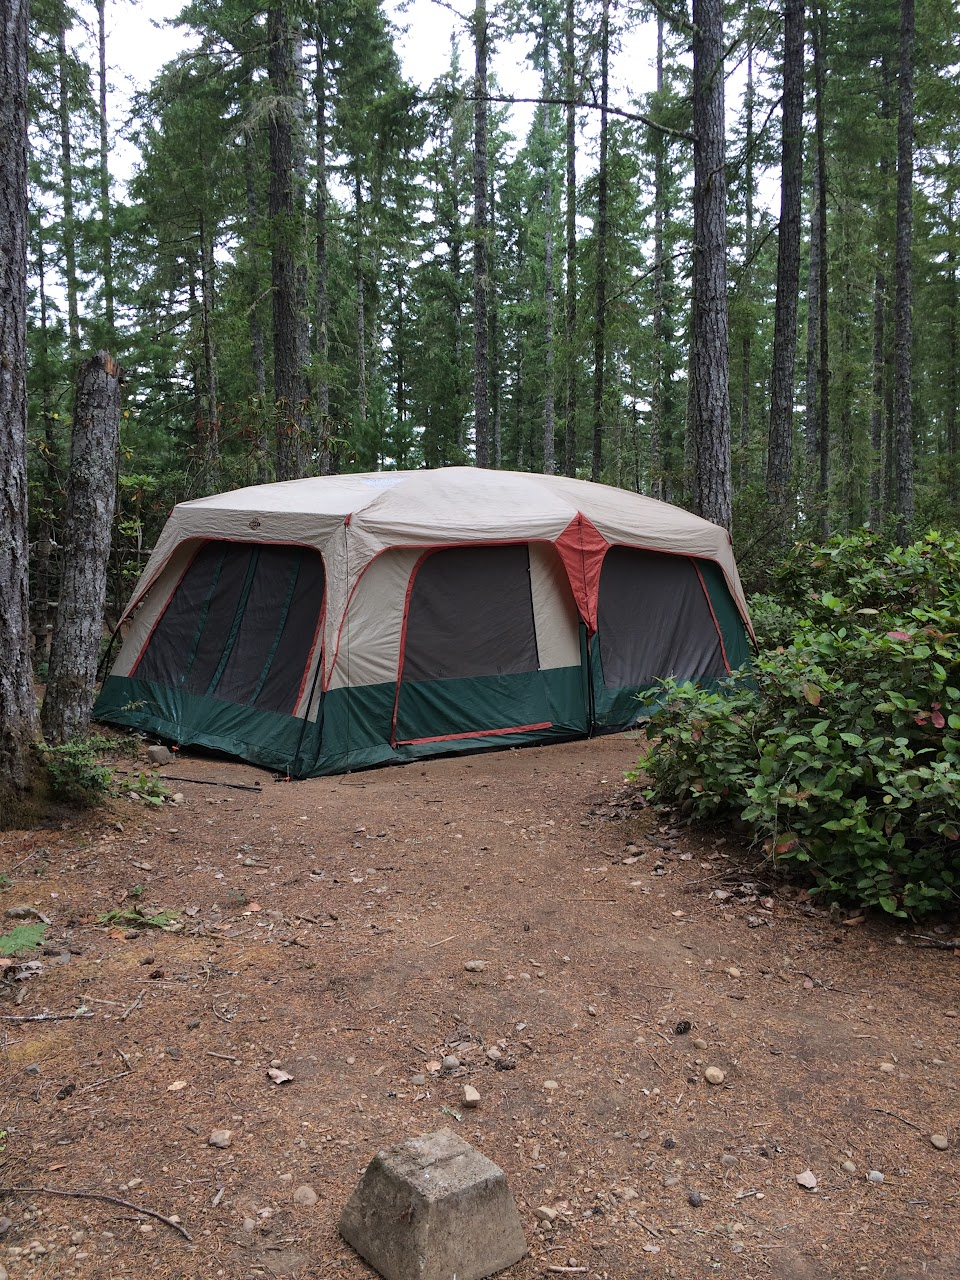 the monster tent